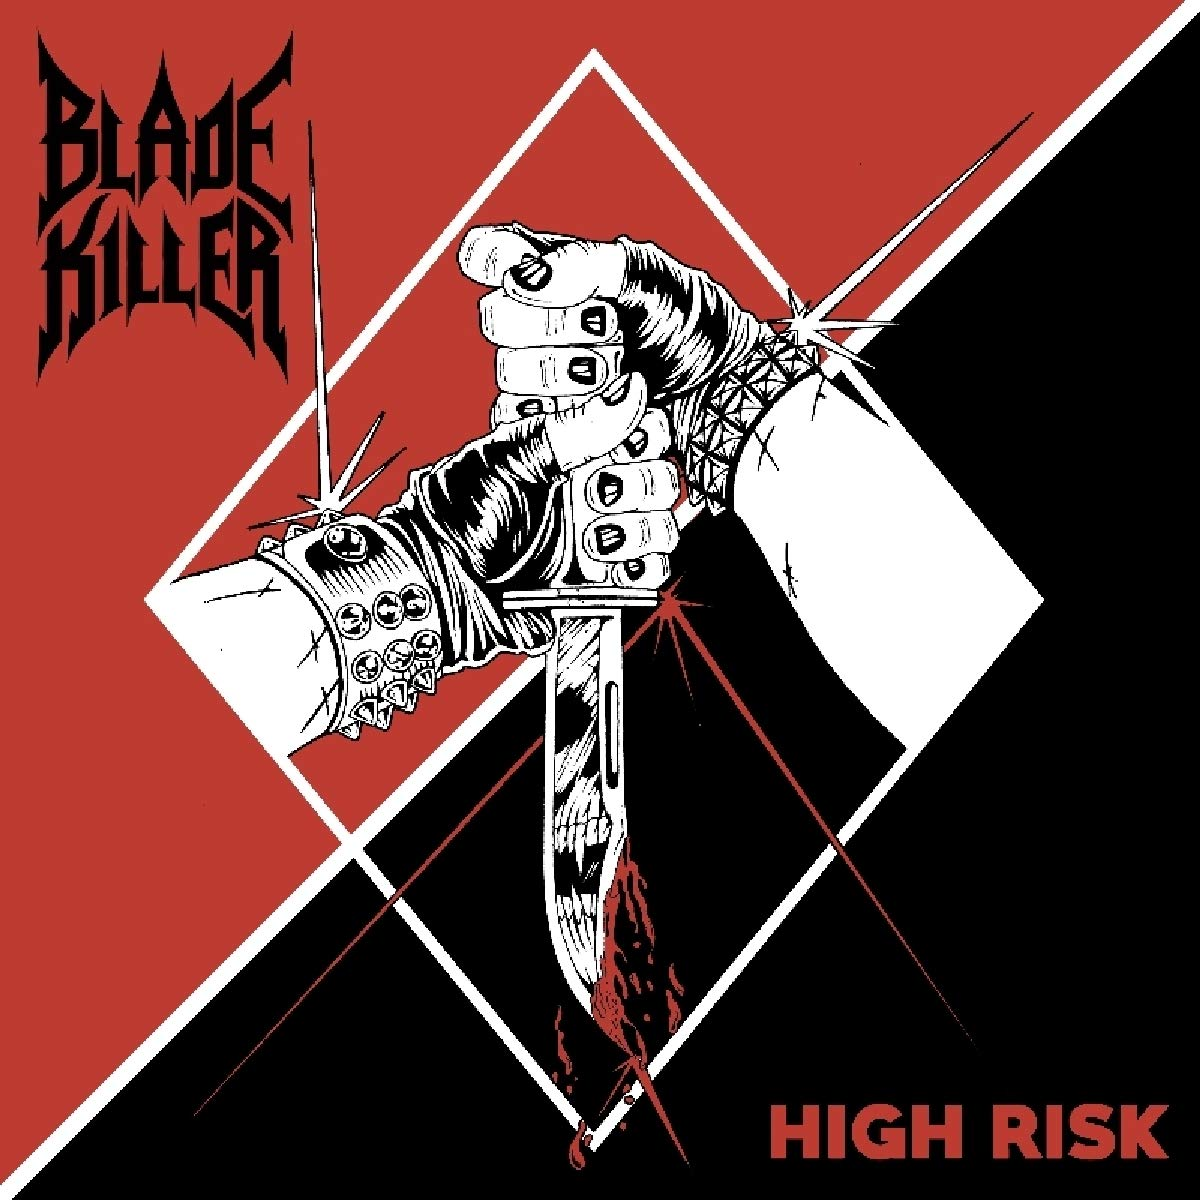 Cassette : Blade Killer - High Risk (Cassette)